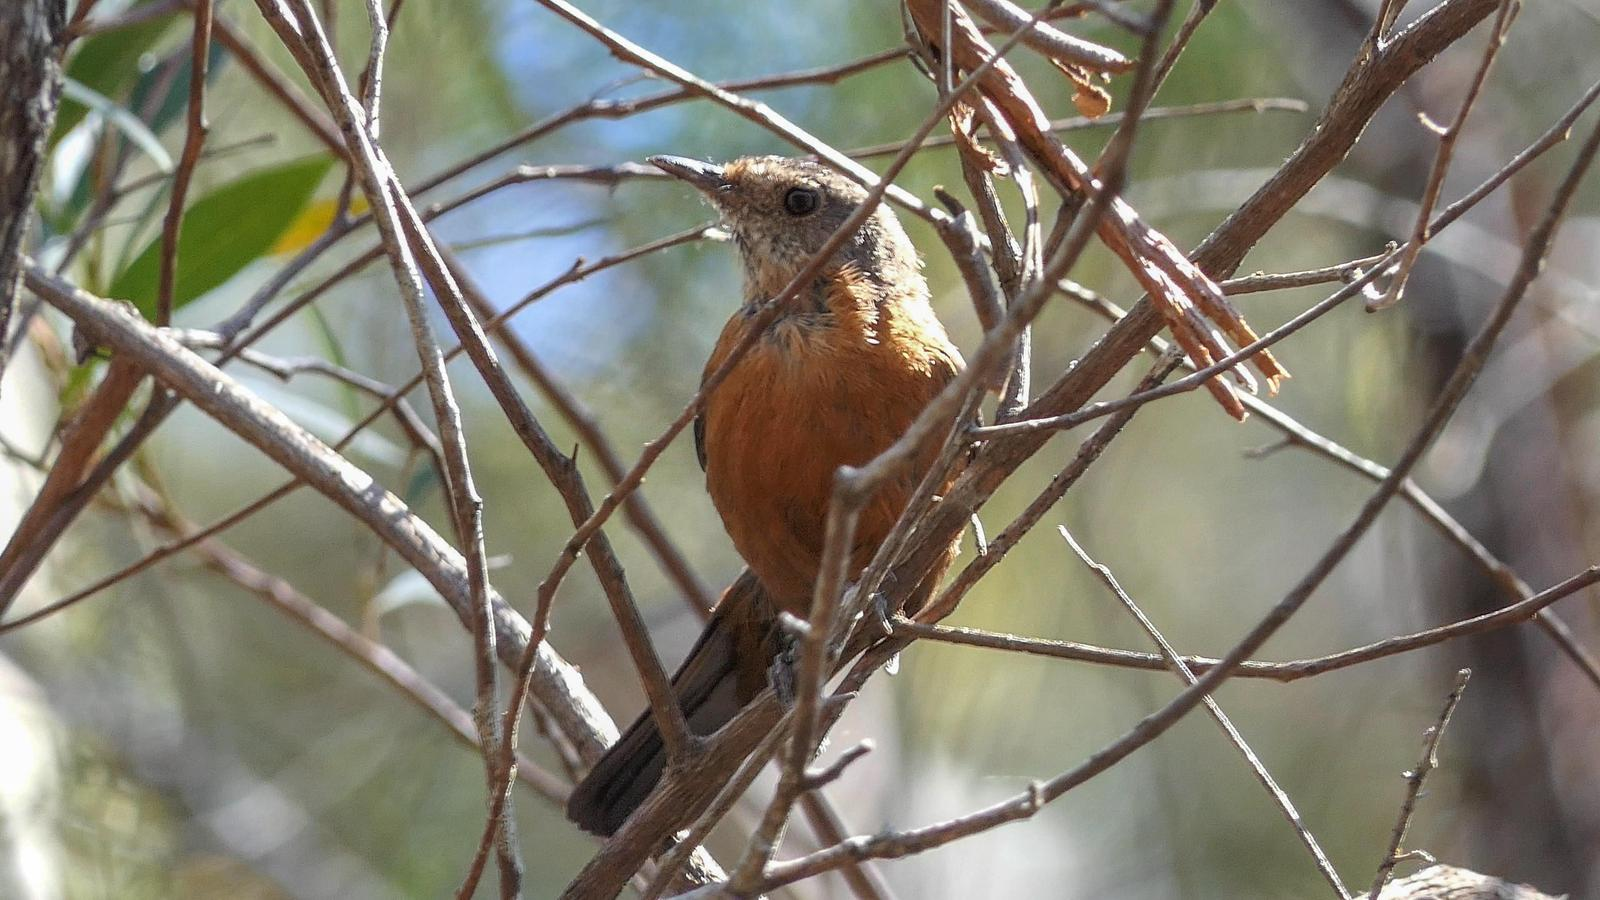 Rockwarbler Photo by Randy Siebert